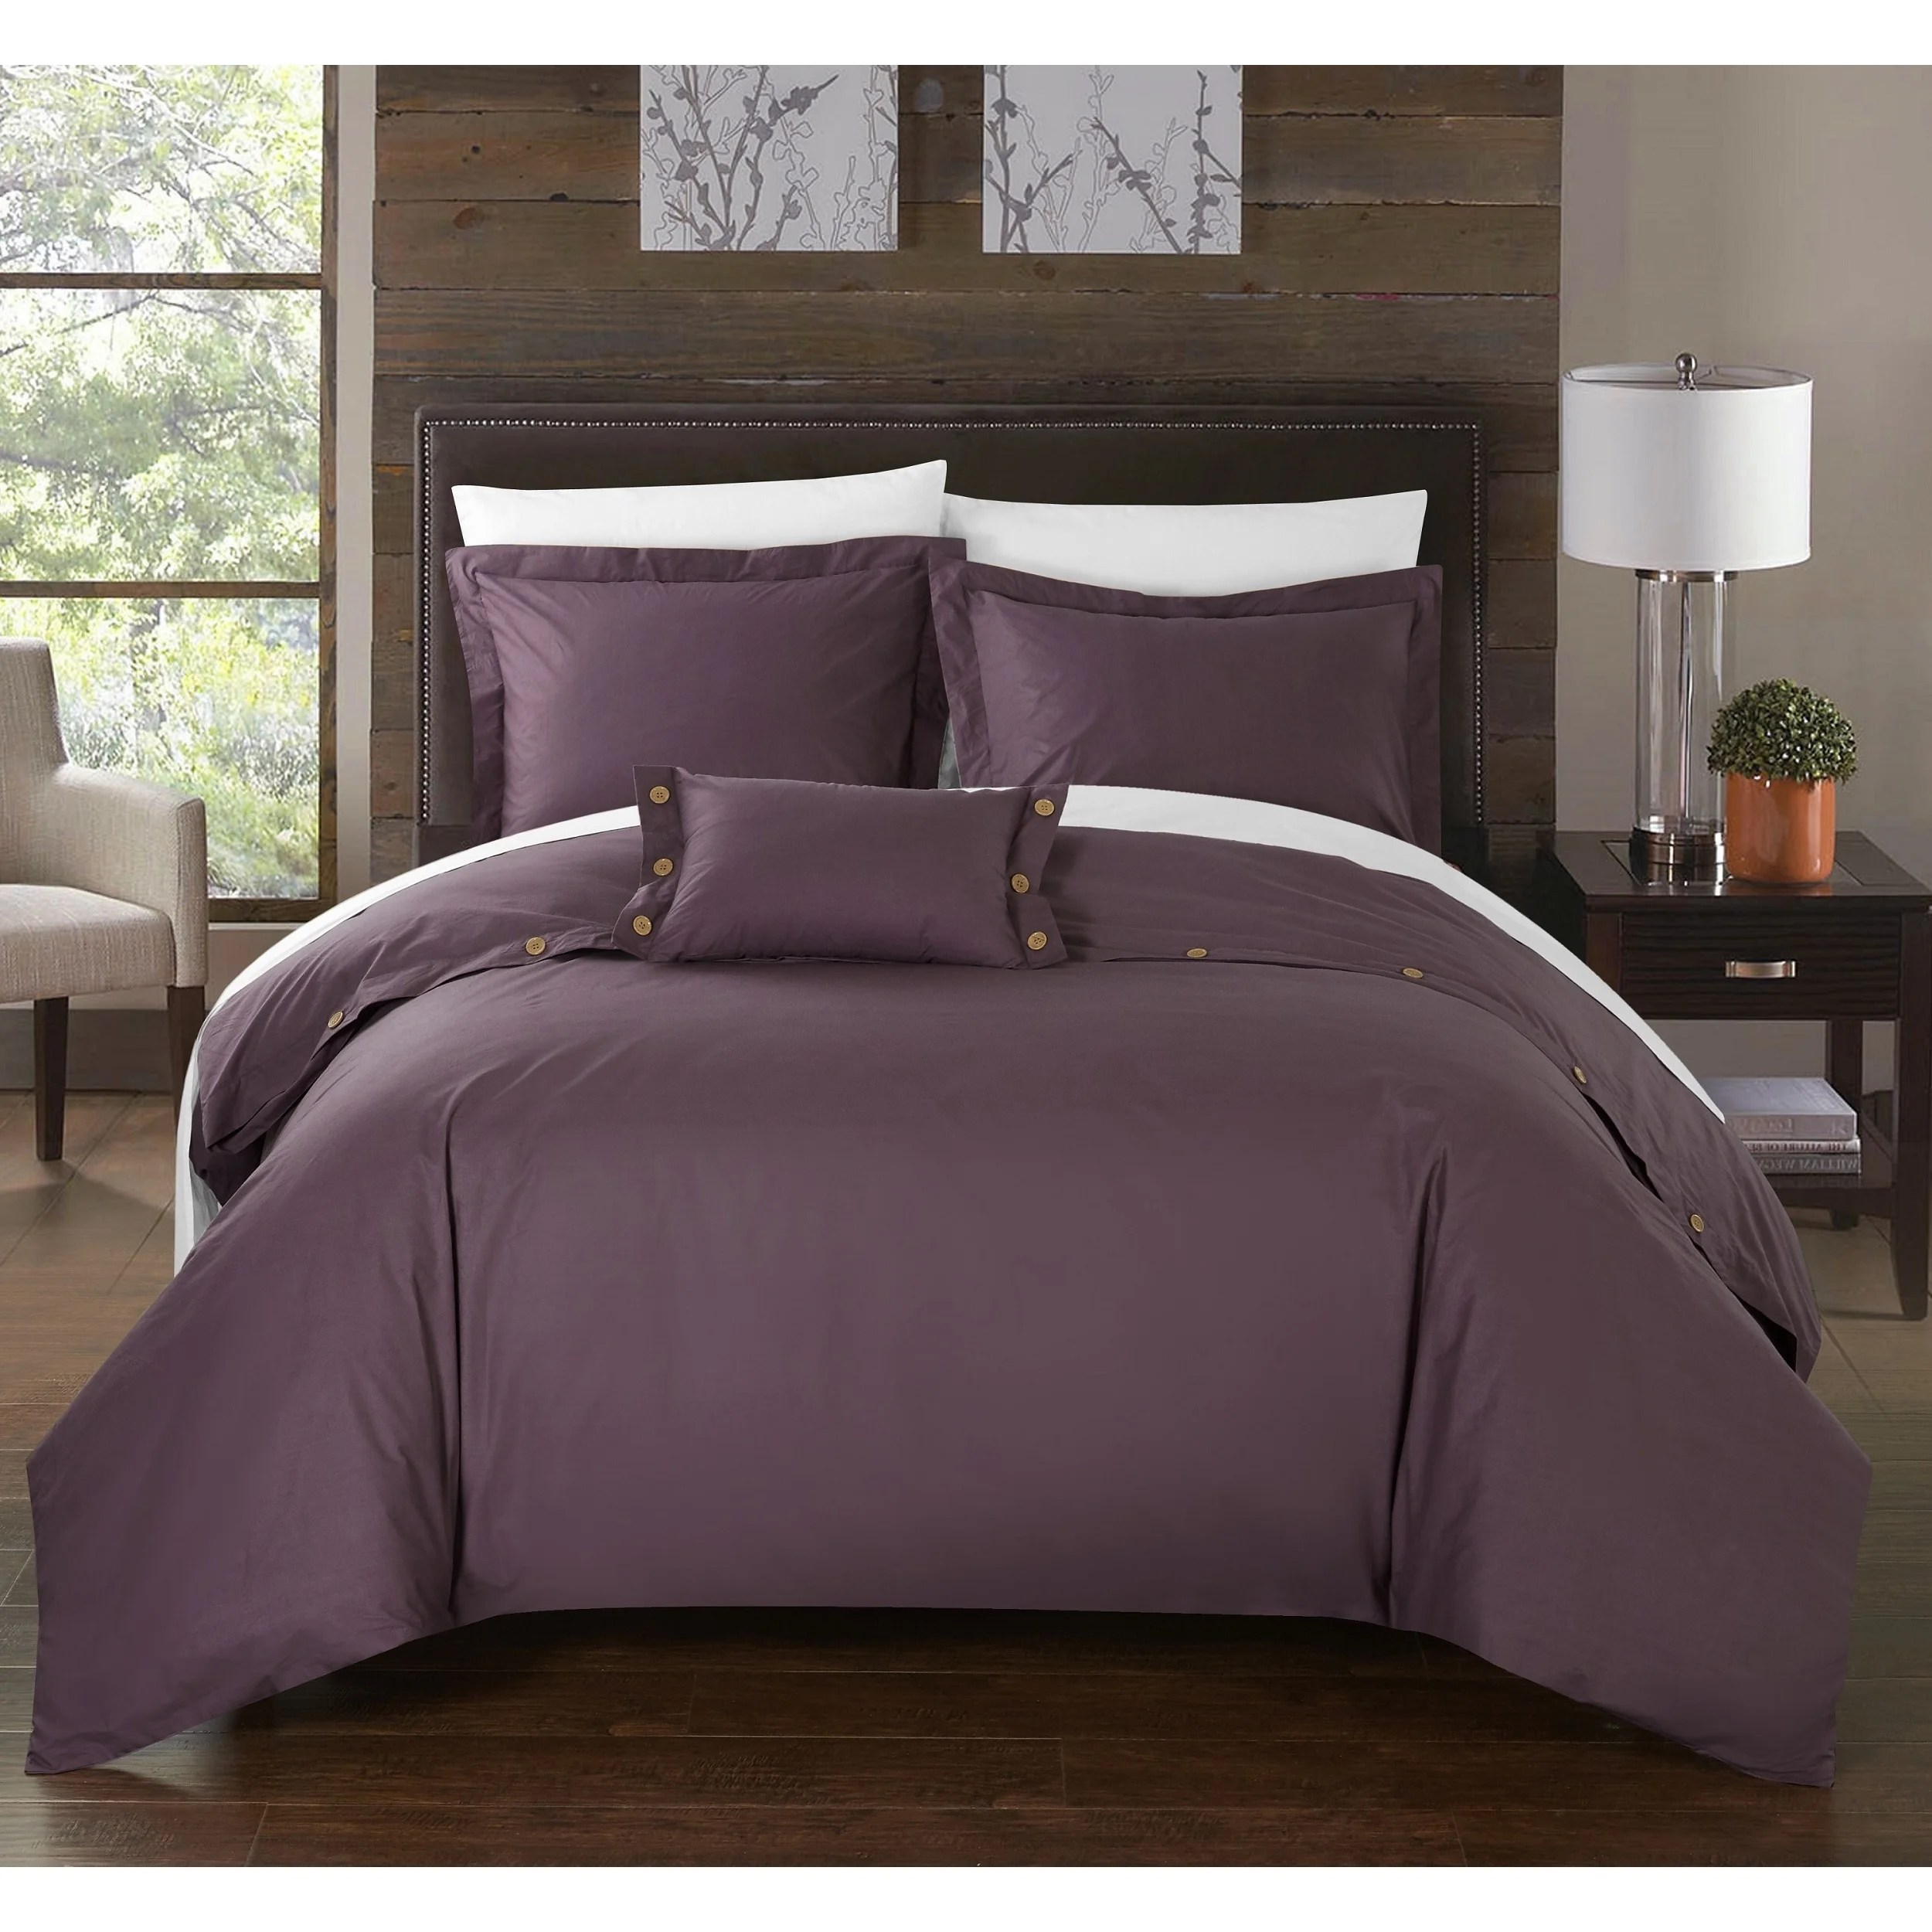 Plum Duvet Cover Chic Home 8 Piece Astrid Bed In A Bag Purple Duvet Set